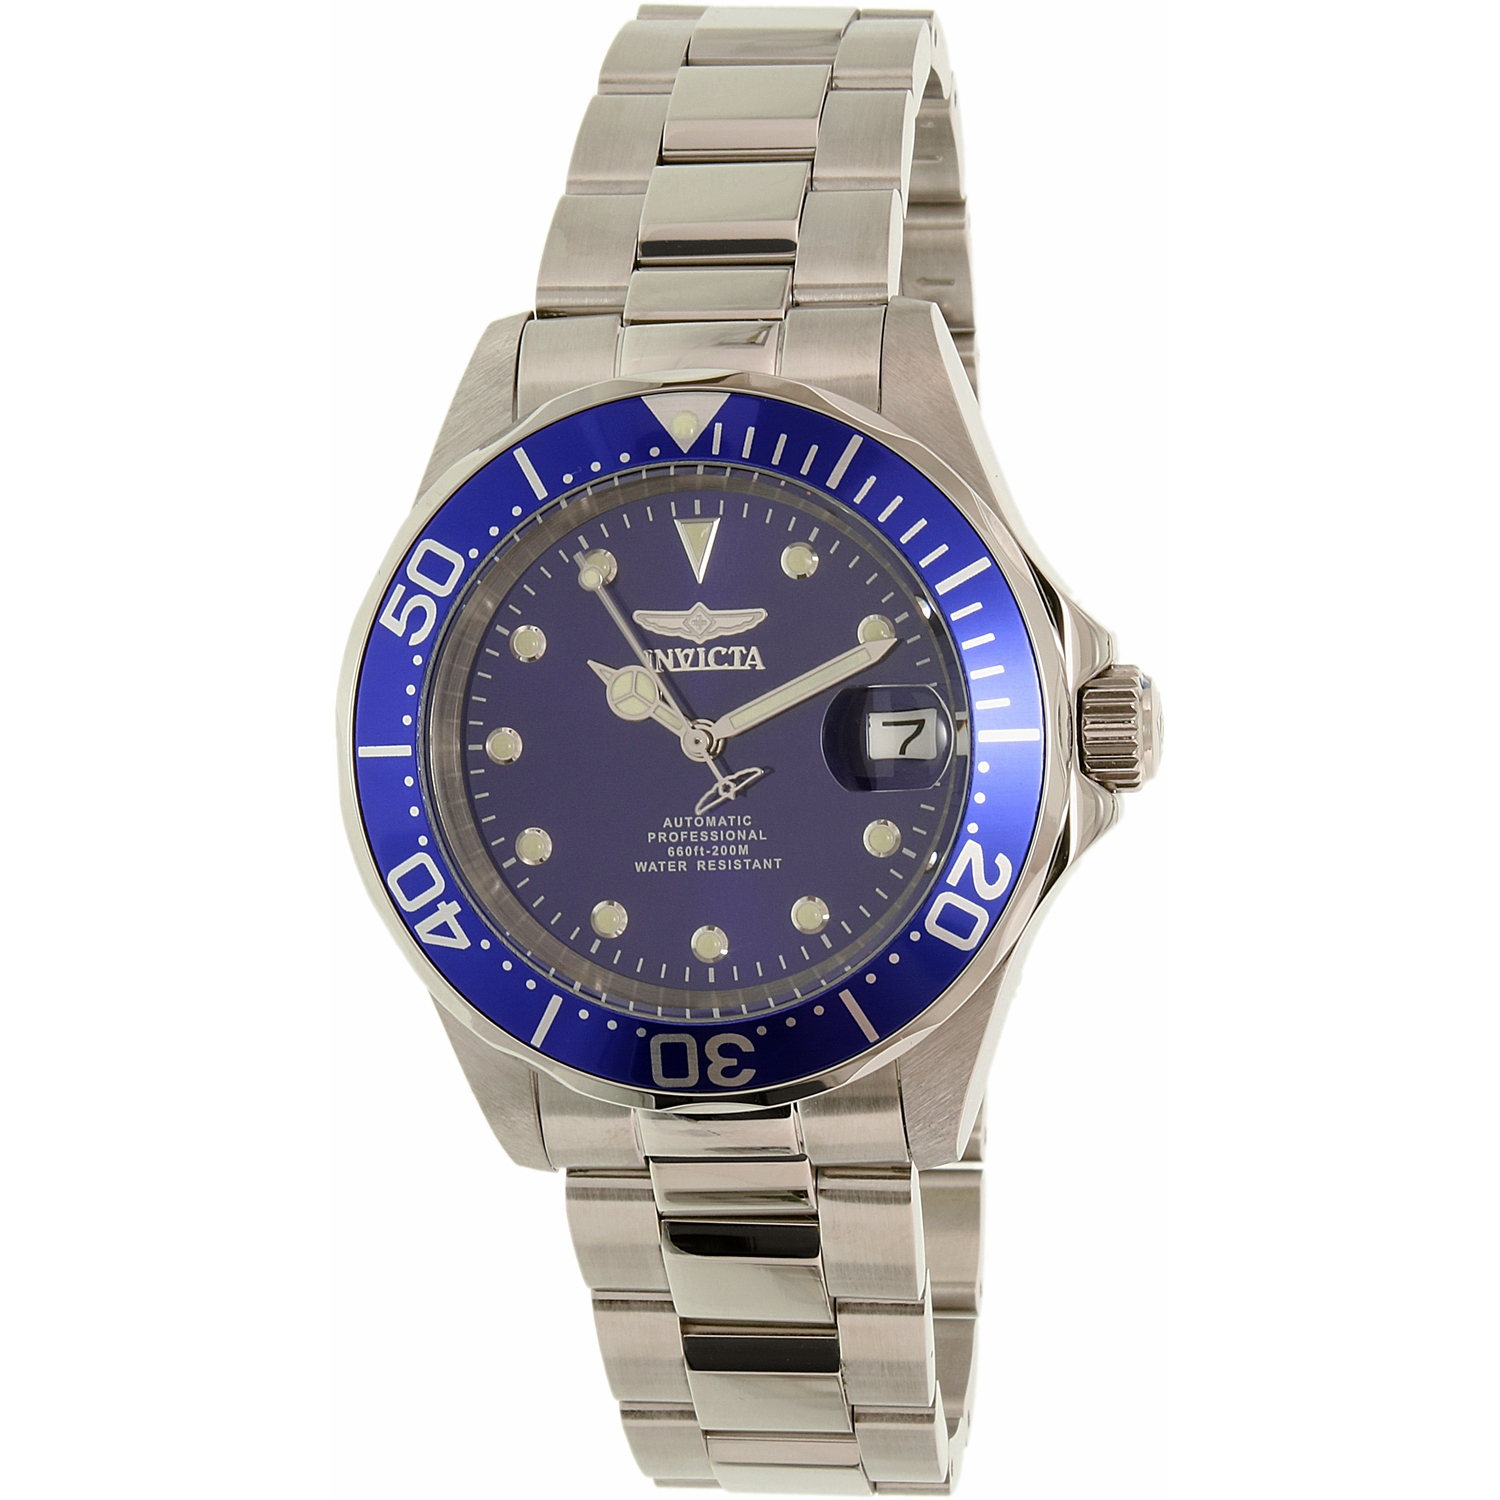 Invicta Men's Pro Diver 17040 Silver Stainless-Steel Automatic Dress Watch